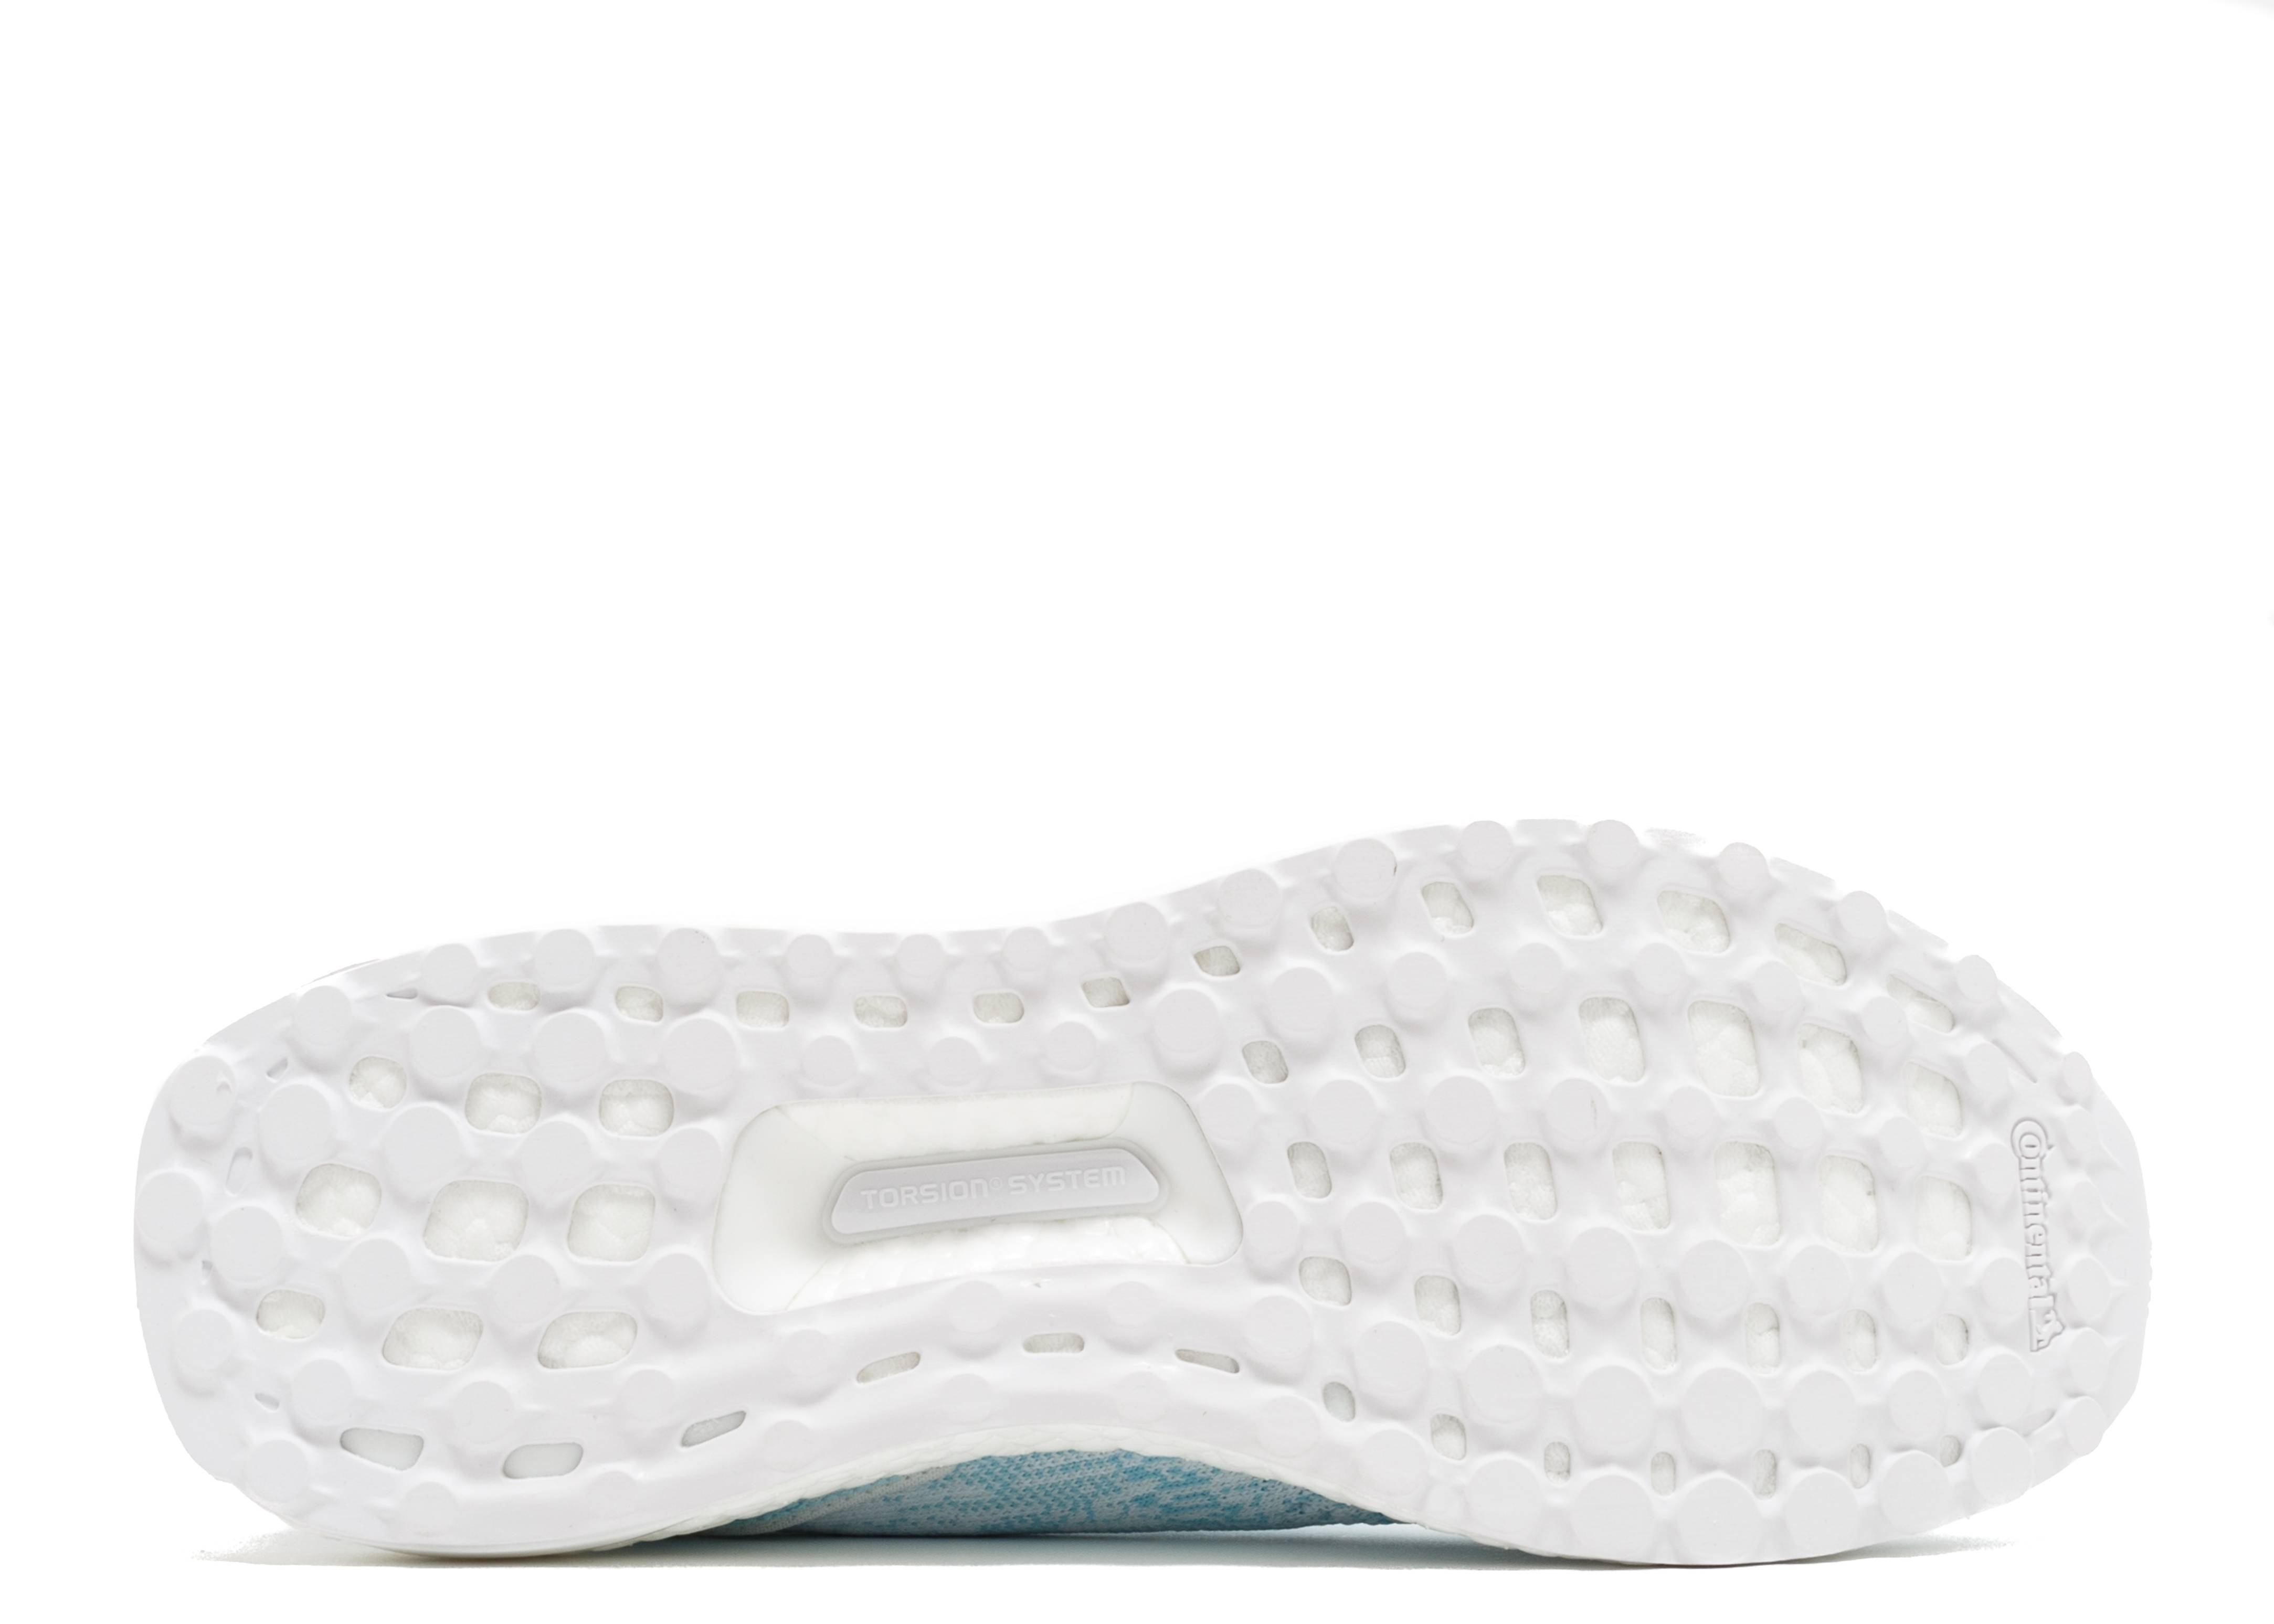 a3abb53965605 UltraBoost Uncaged Parley